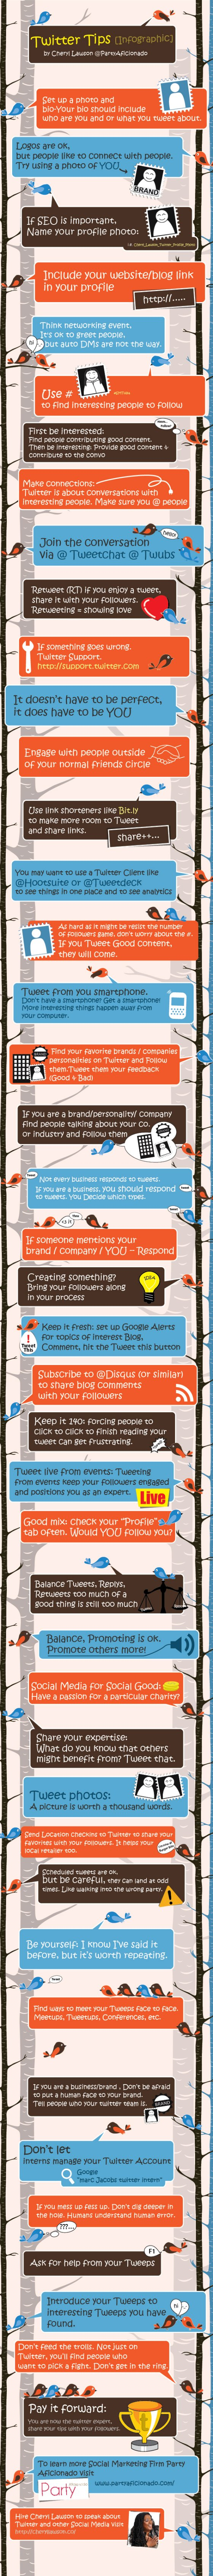 how to use twitter infographic resized 600